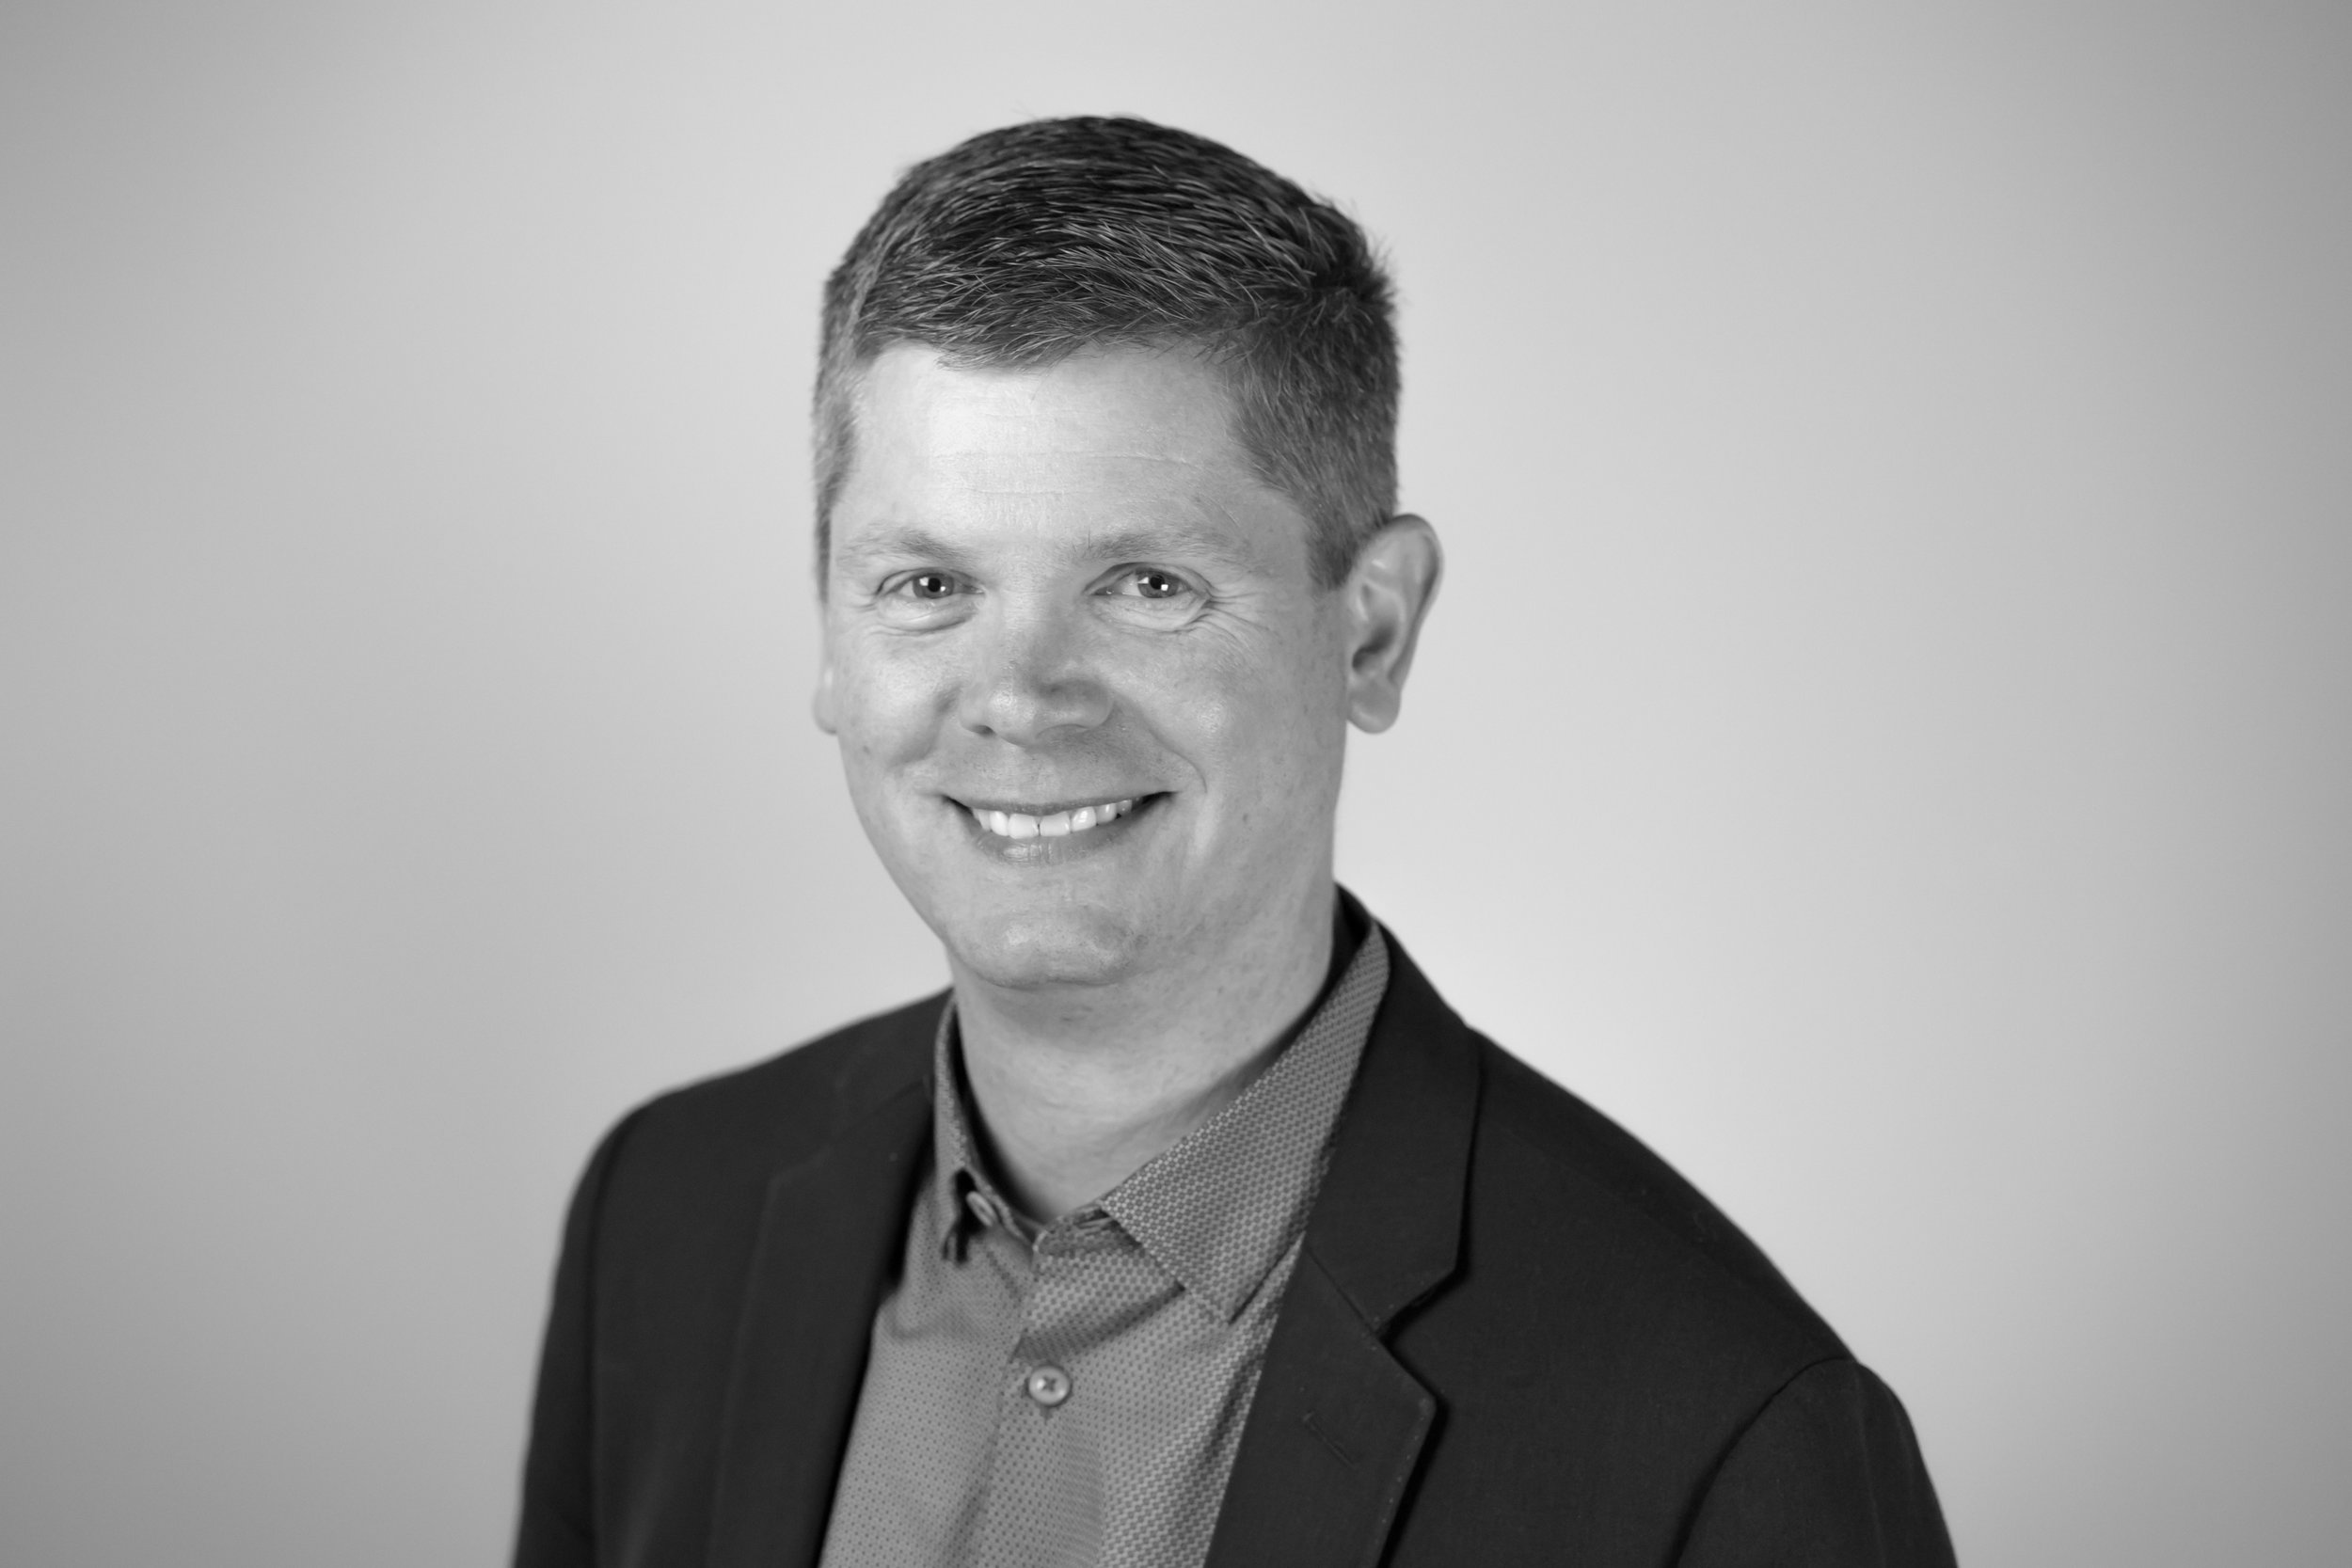 Jed Carlson - Chief Executive Officer